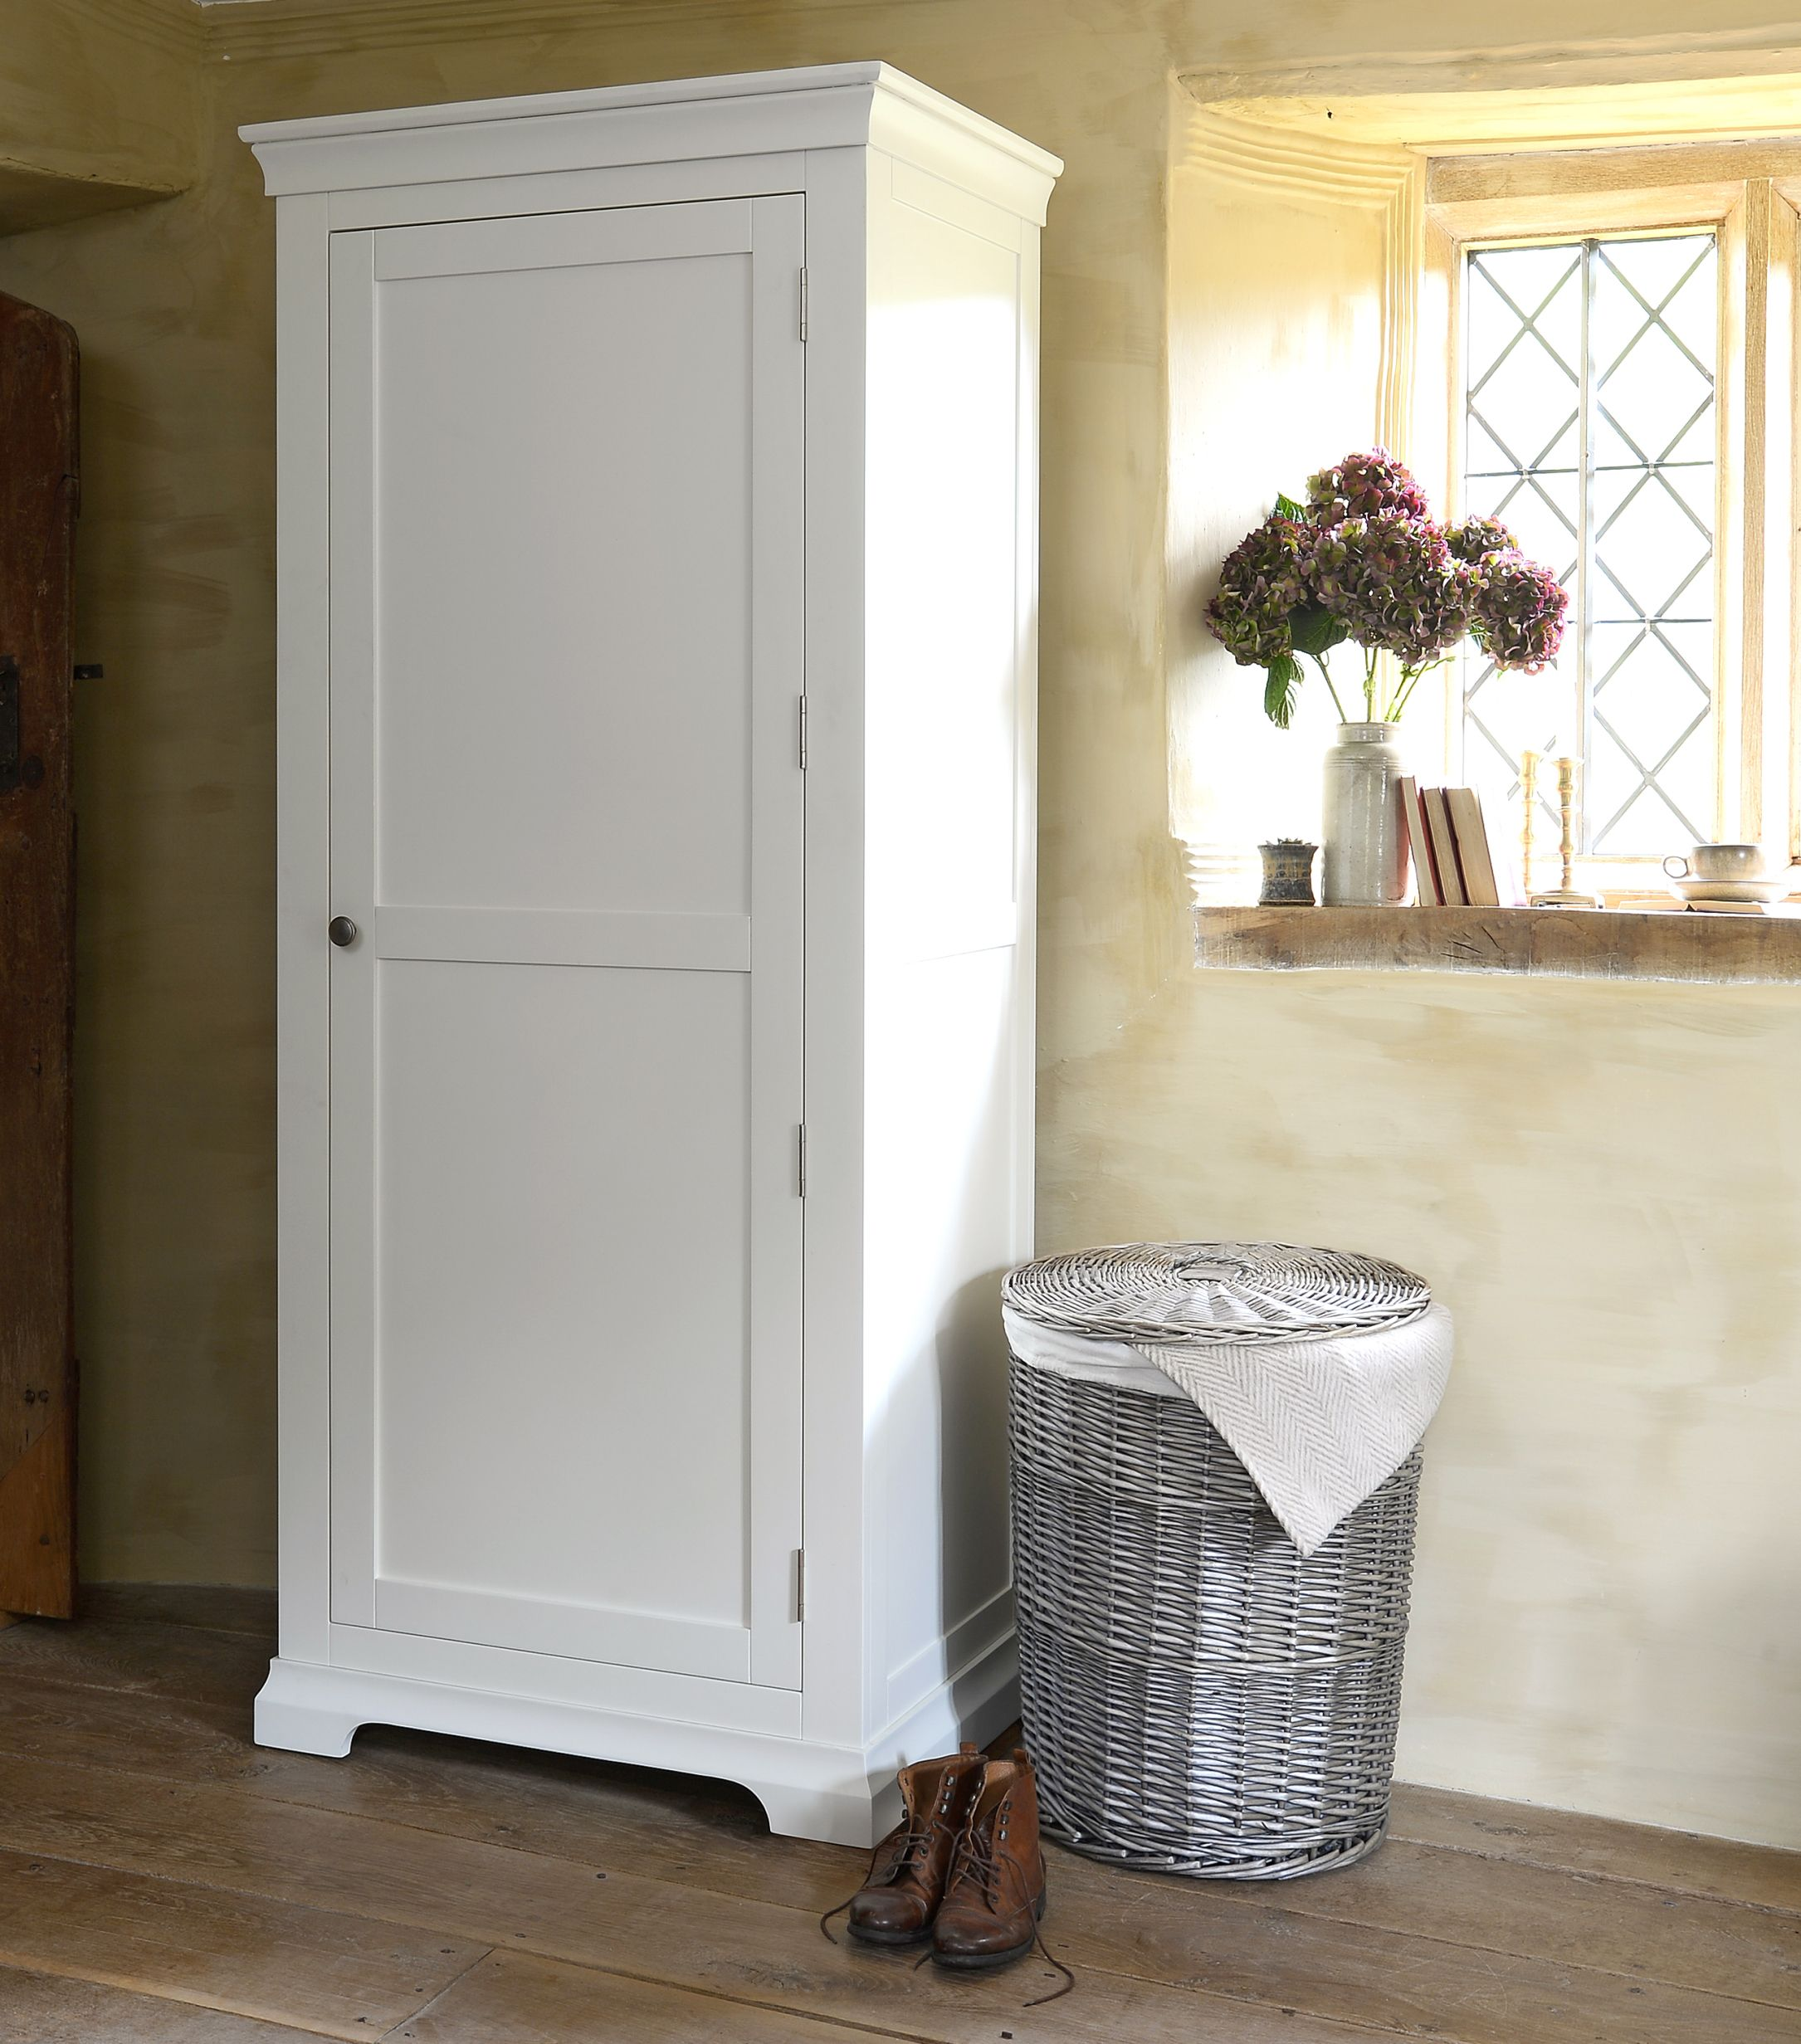 Creative Bathroom Ideas | Cotswold Co Blog | Pinterest | Room